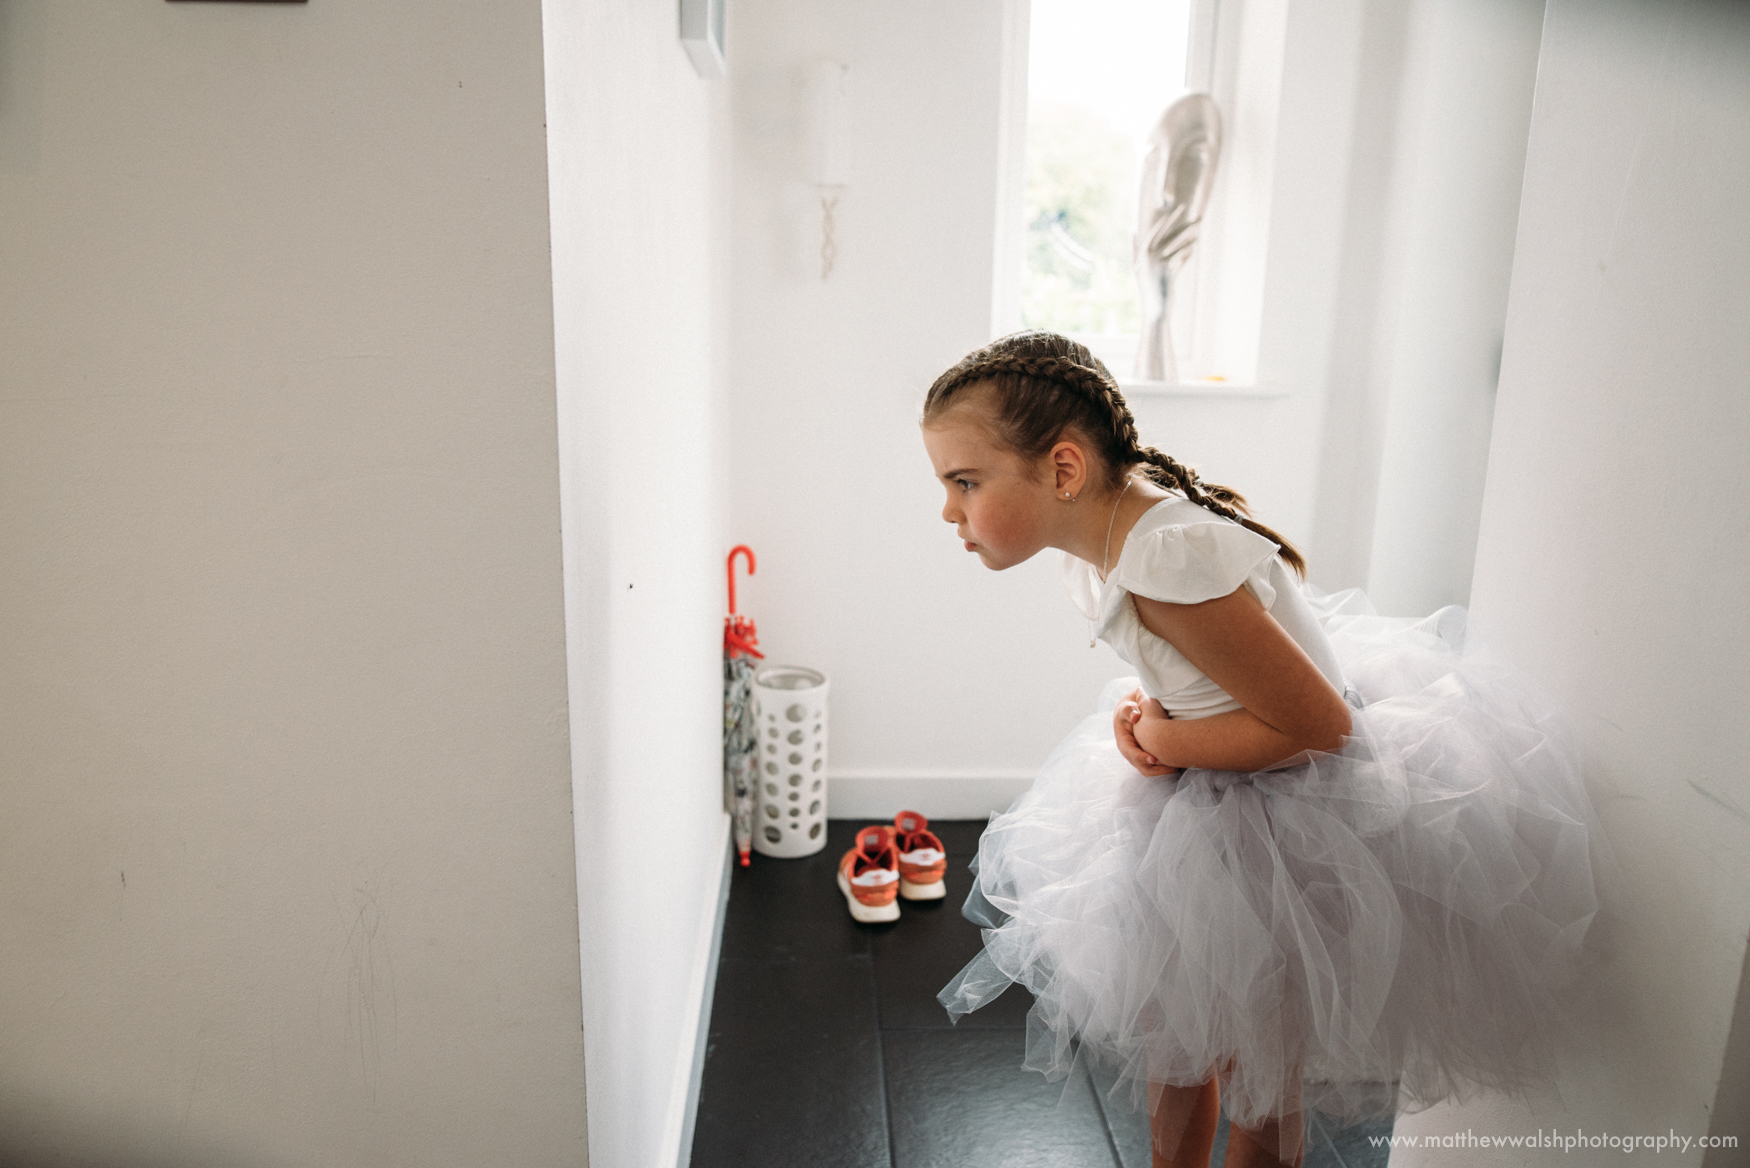 One of the flower girls inspects a spider on the wall with great interest